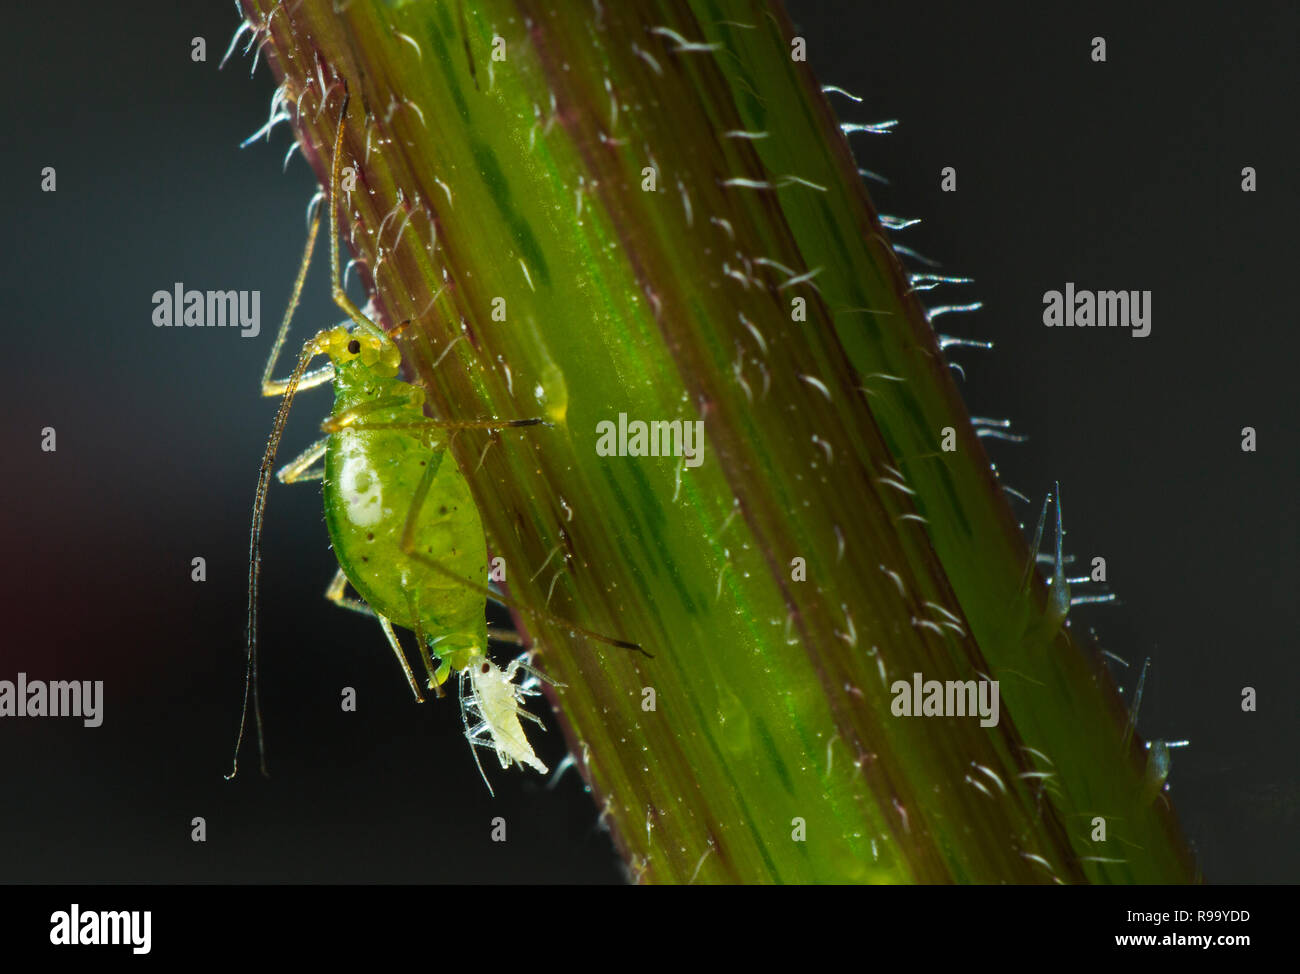 Common Nettle Aphid Microlophium carnosum giving birth - Stock Image